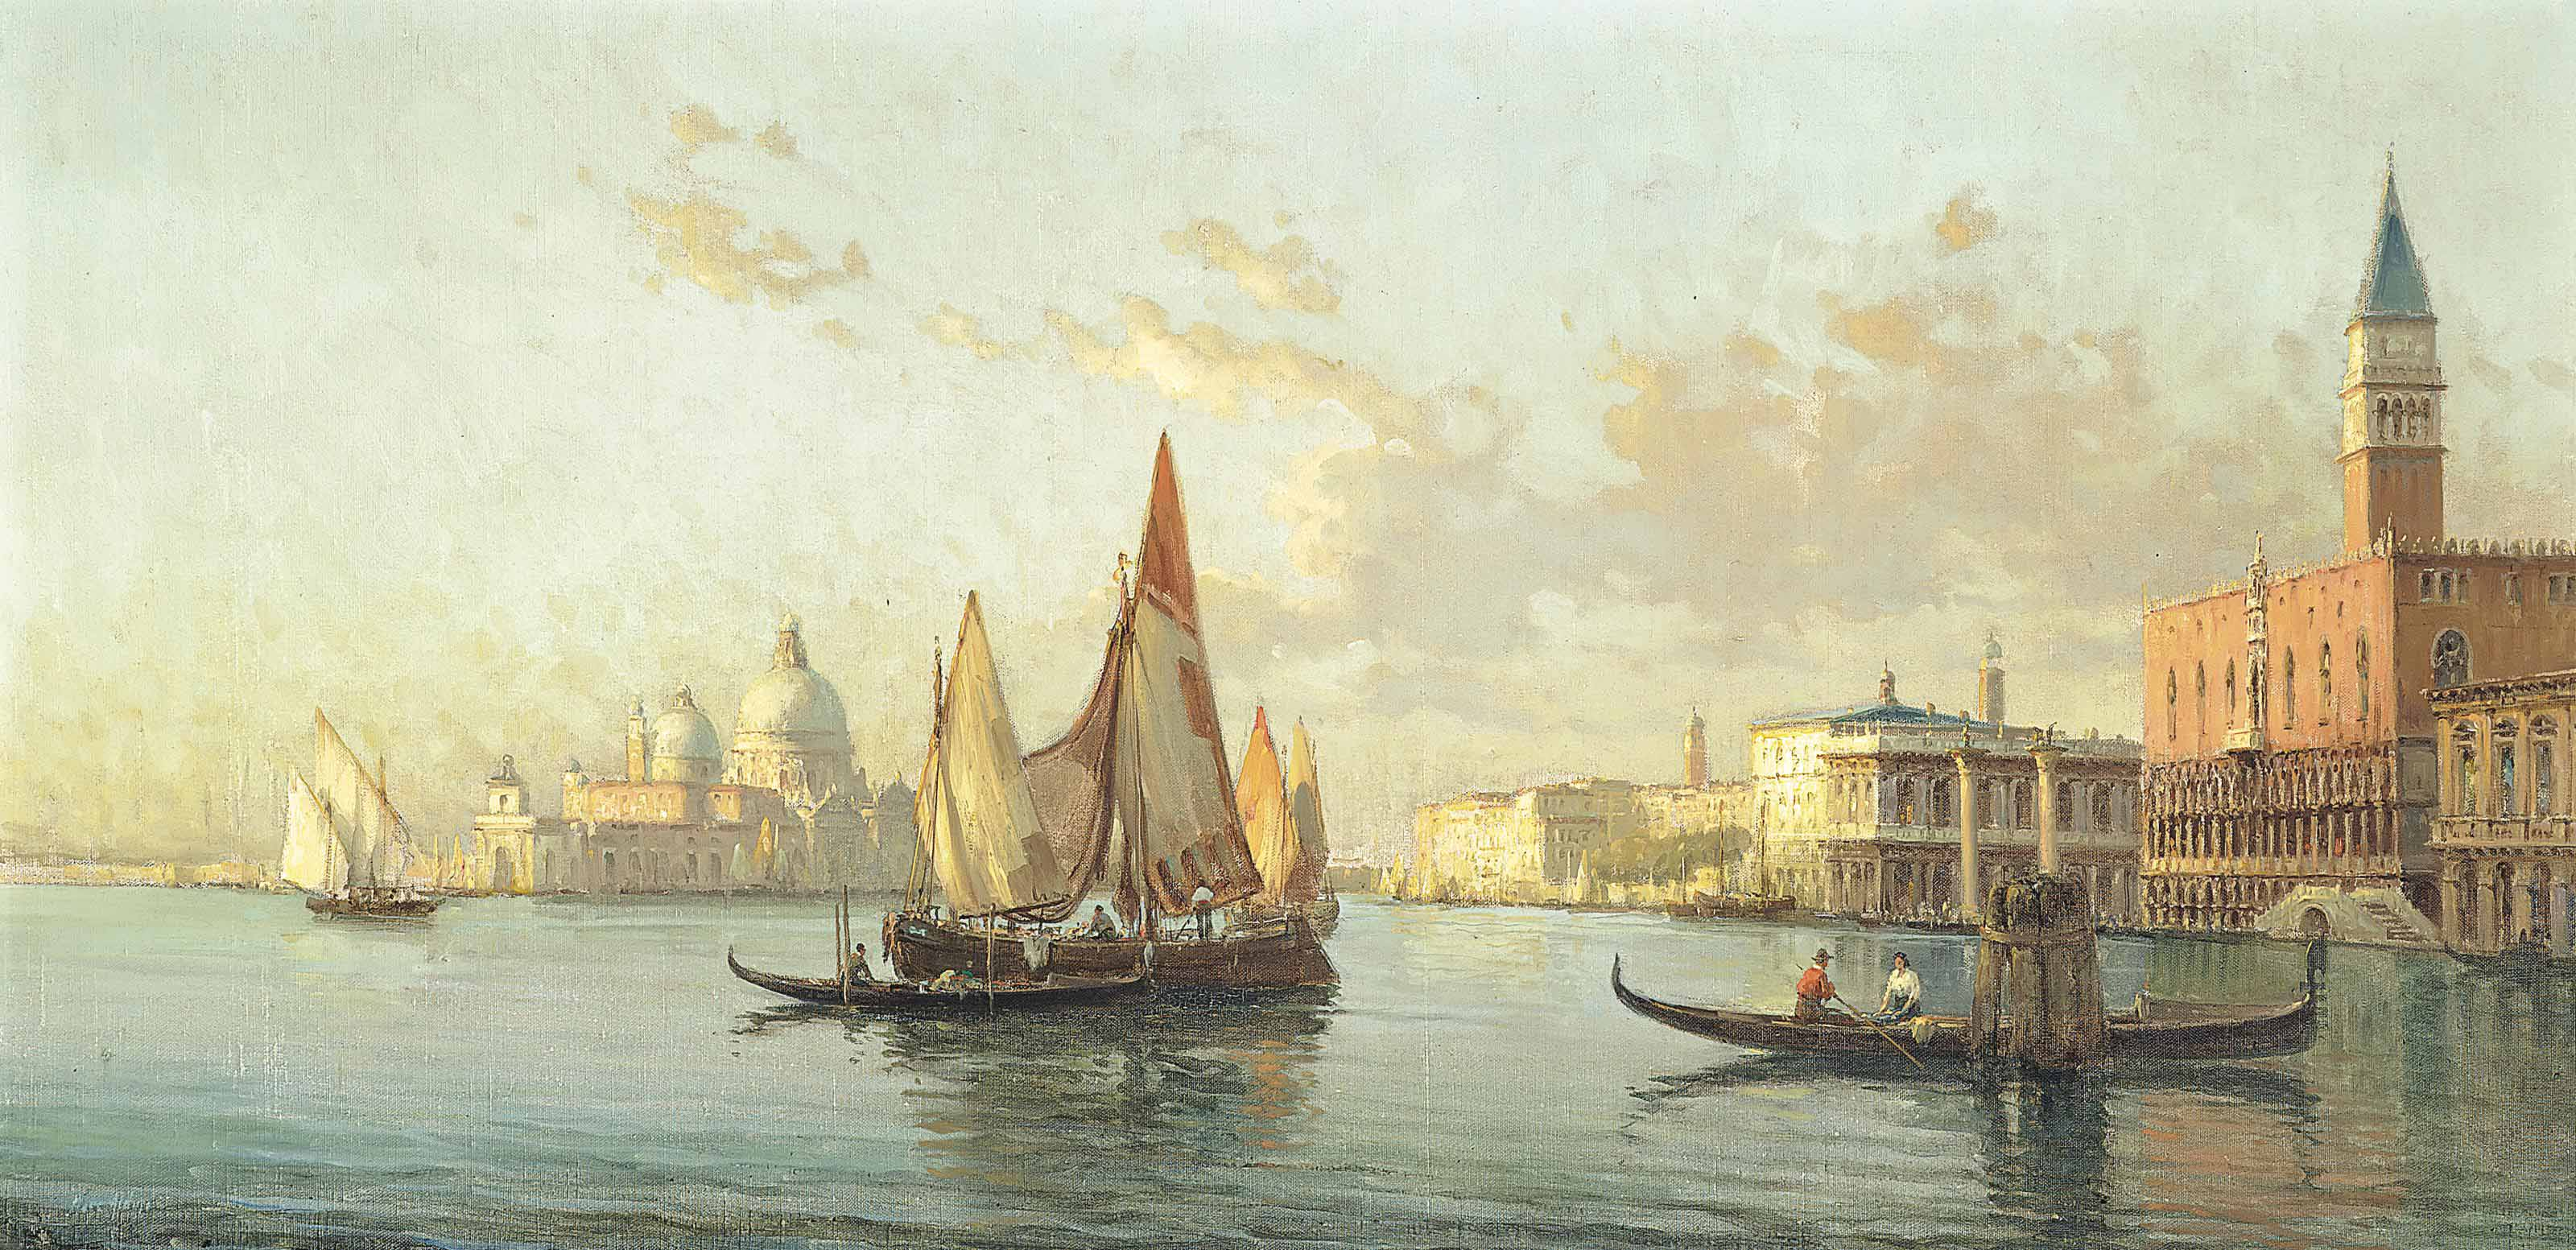 Vessels before the Doge's Palace, at the entrance to the Grand Canal, Venice